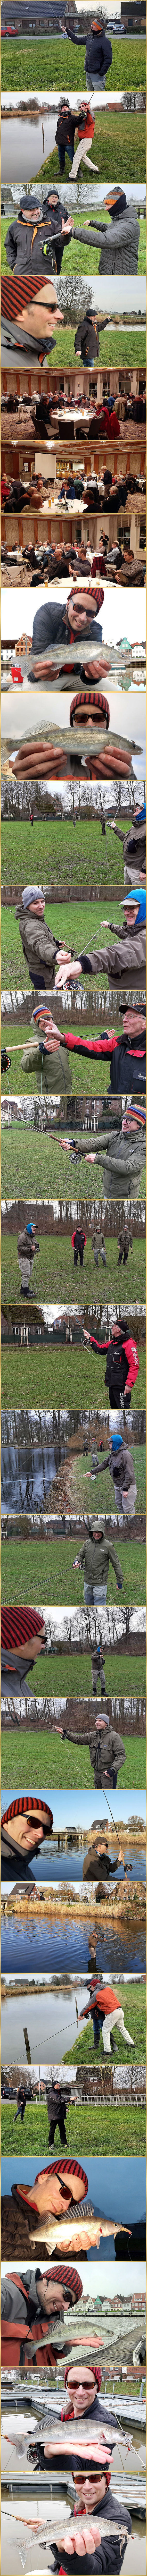 flycasting tuition ziesche bernd Germany